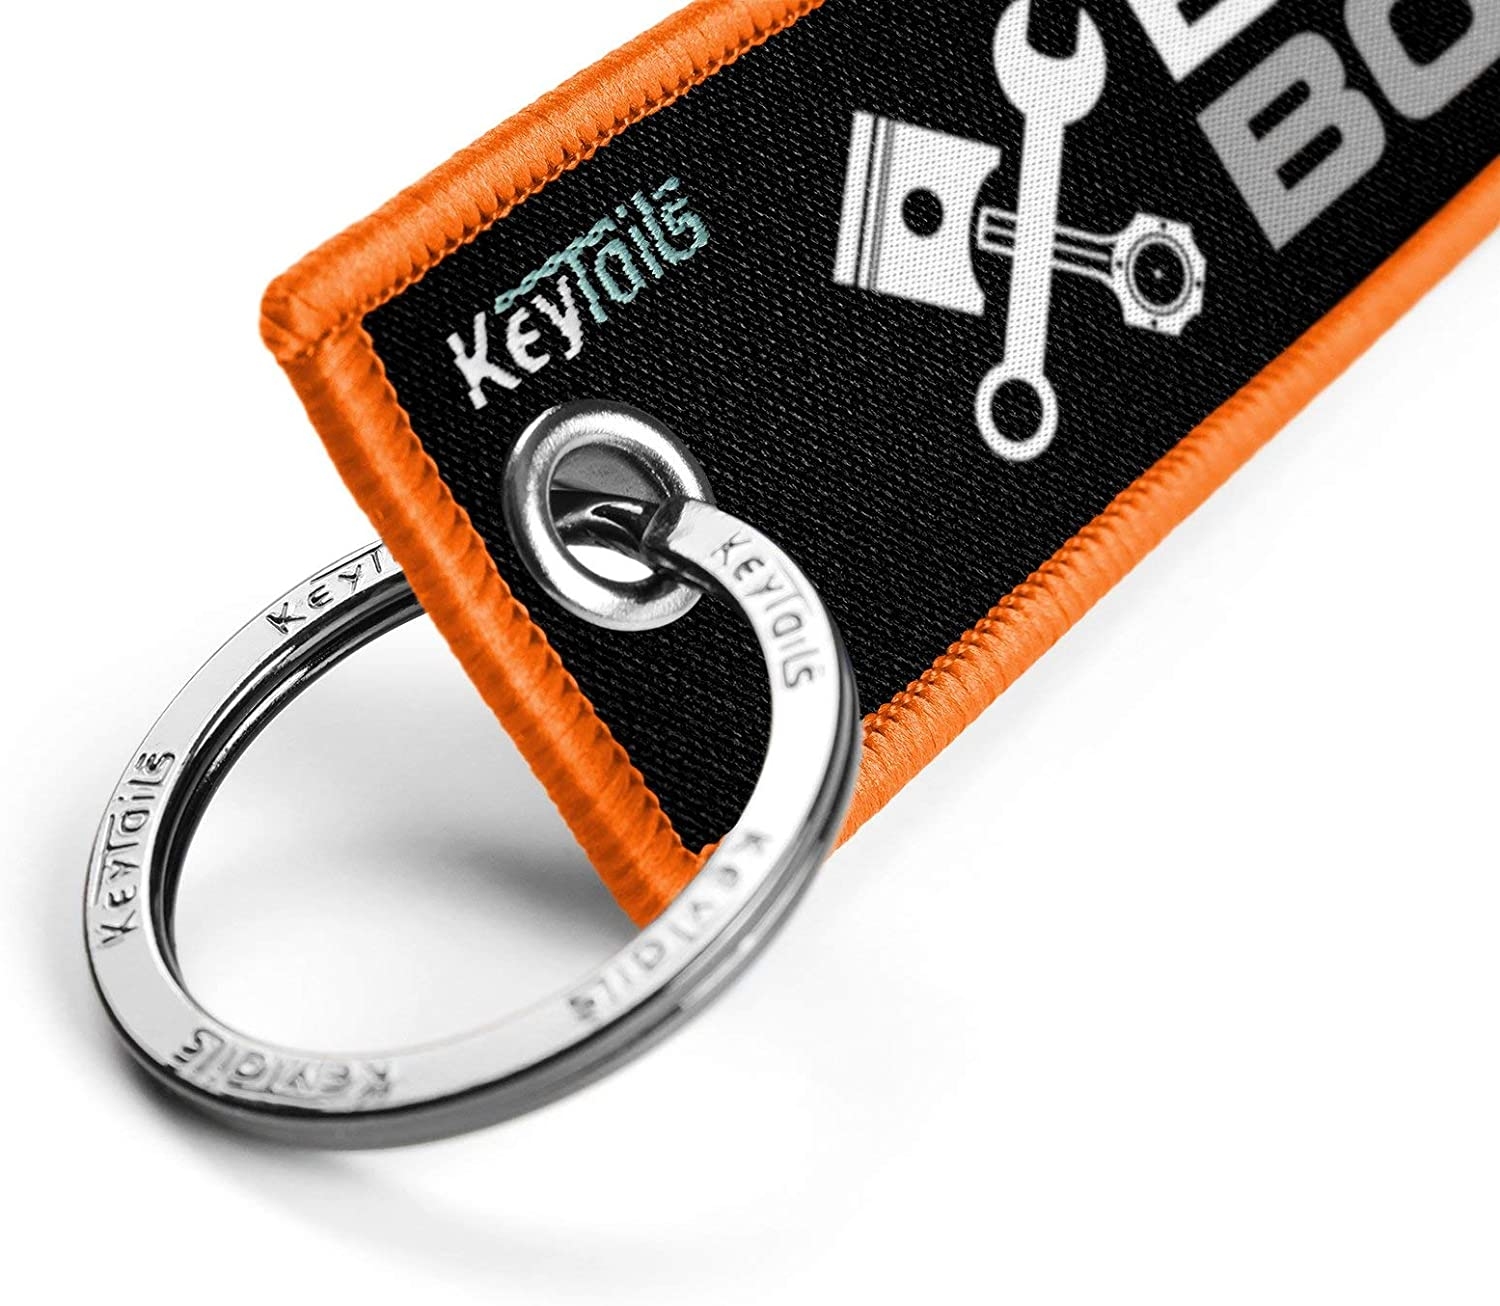 Premium Quality Key Tag for Motorcycle KEYTAILS Keychains Car UTV Built Not Bought ATV Scooter